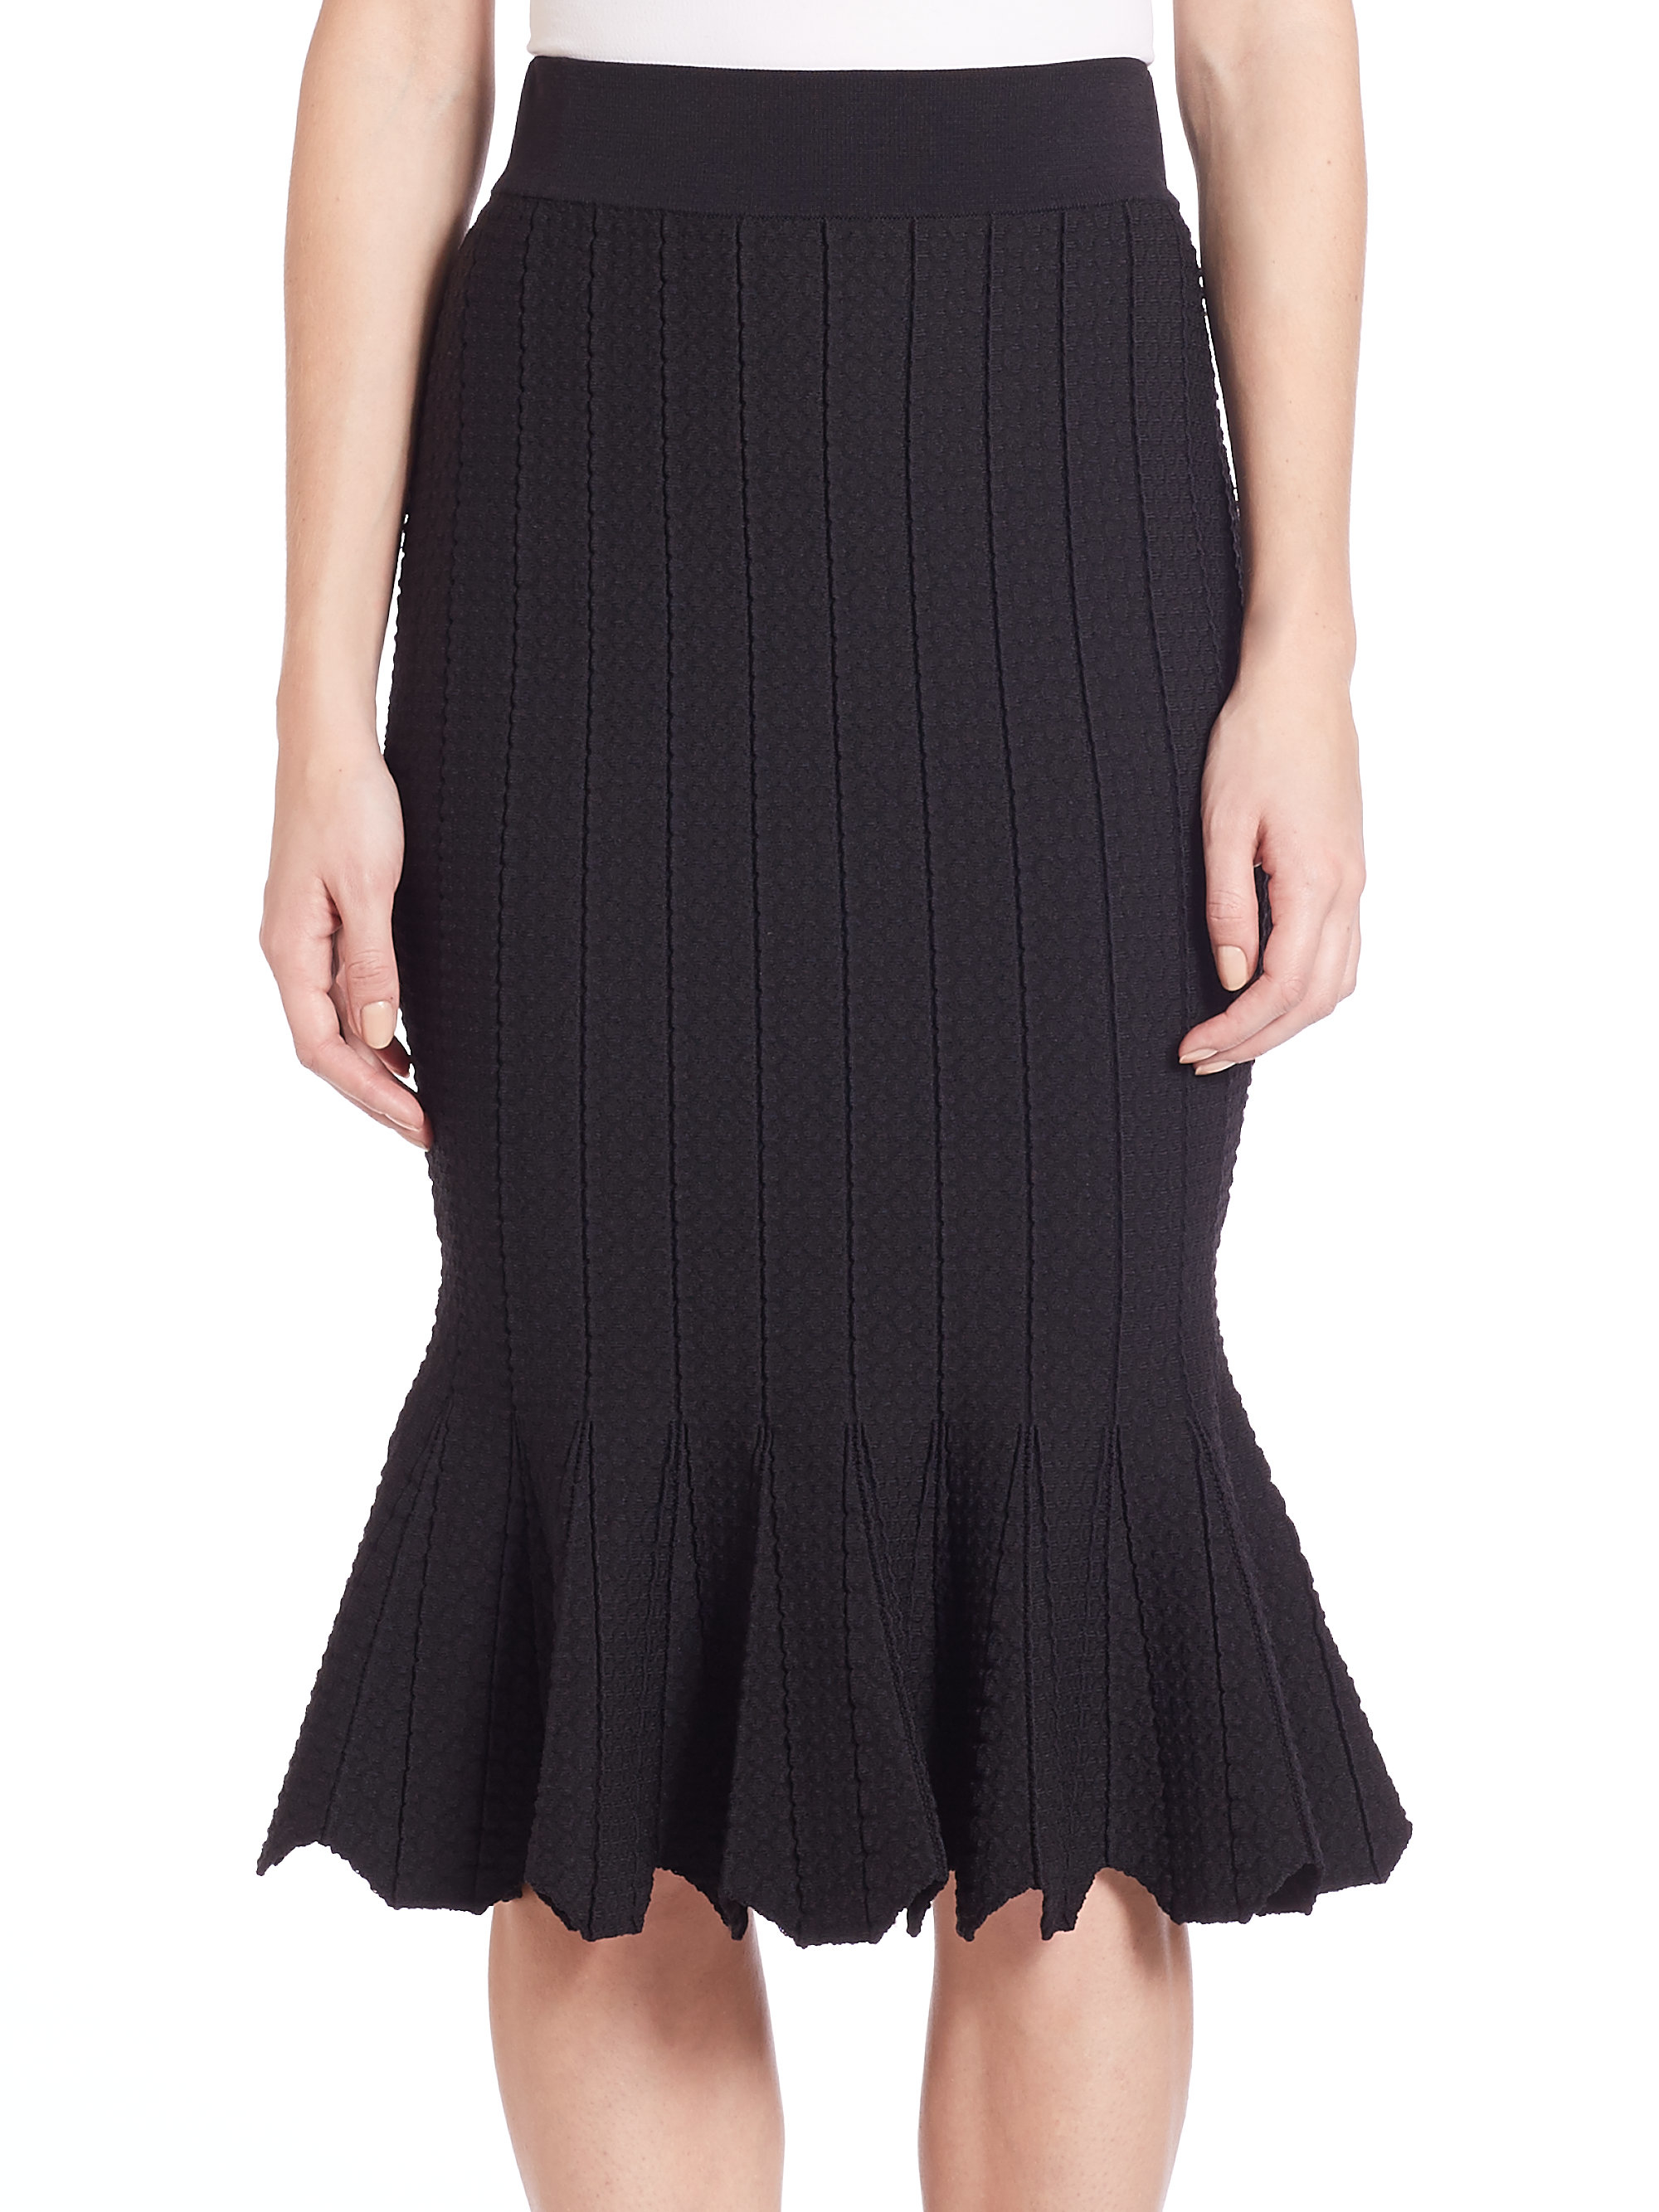 Find great deals on eBay for black knit skirts. Shop with confidence.